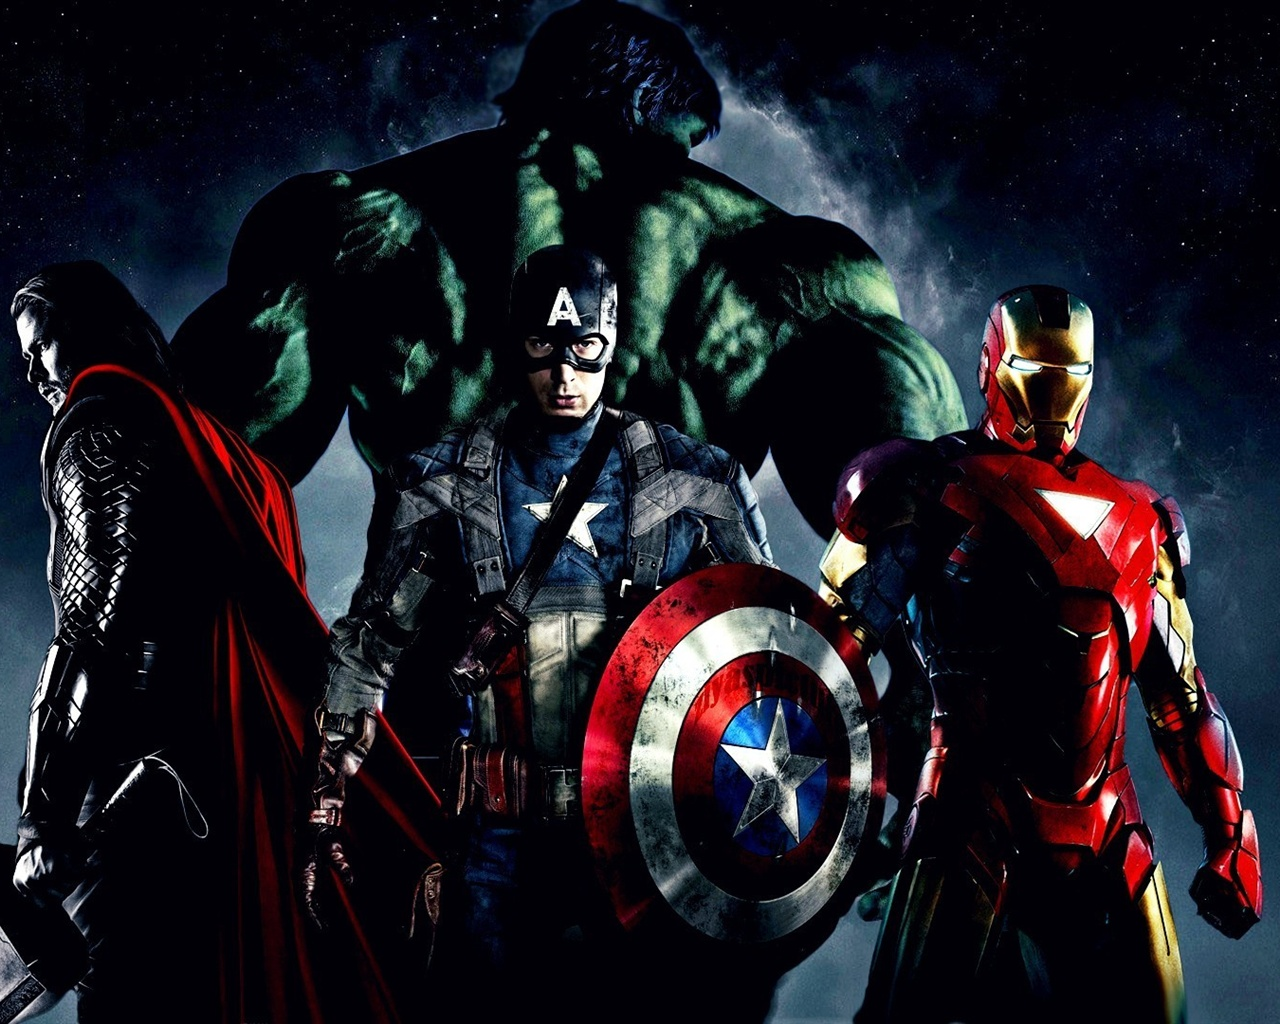 The Avengers 2012 movie wallpaper - 1280x1024